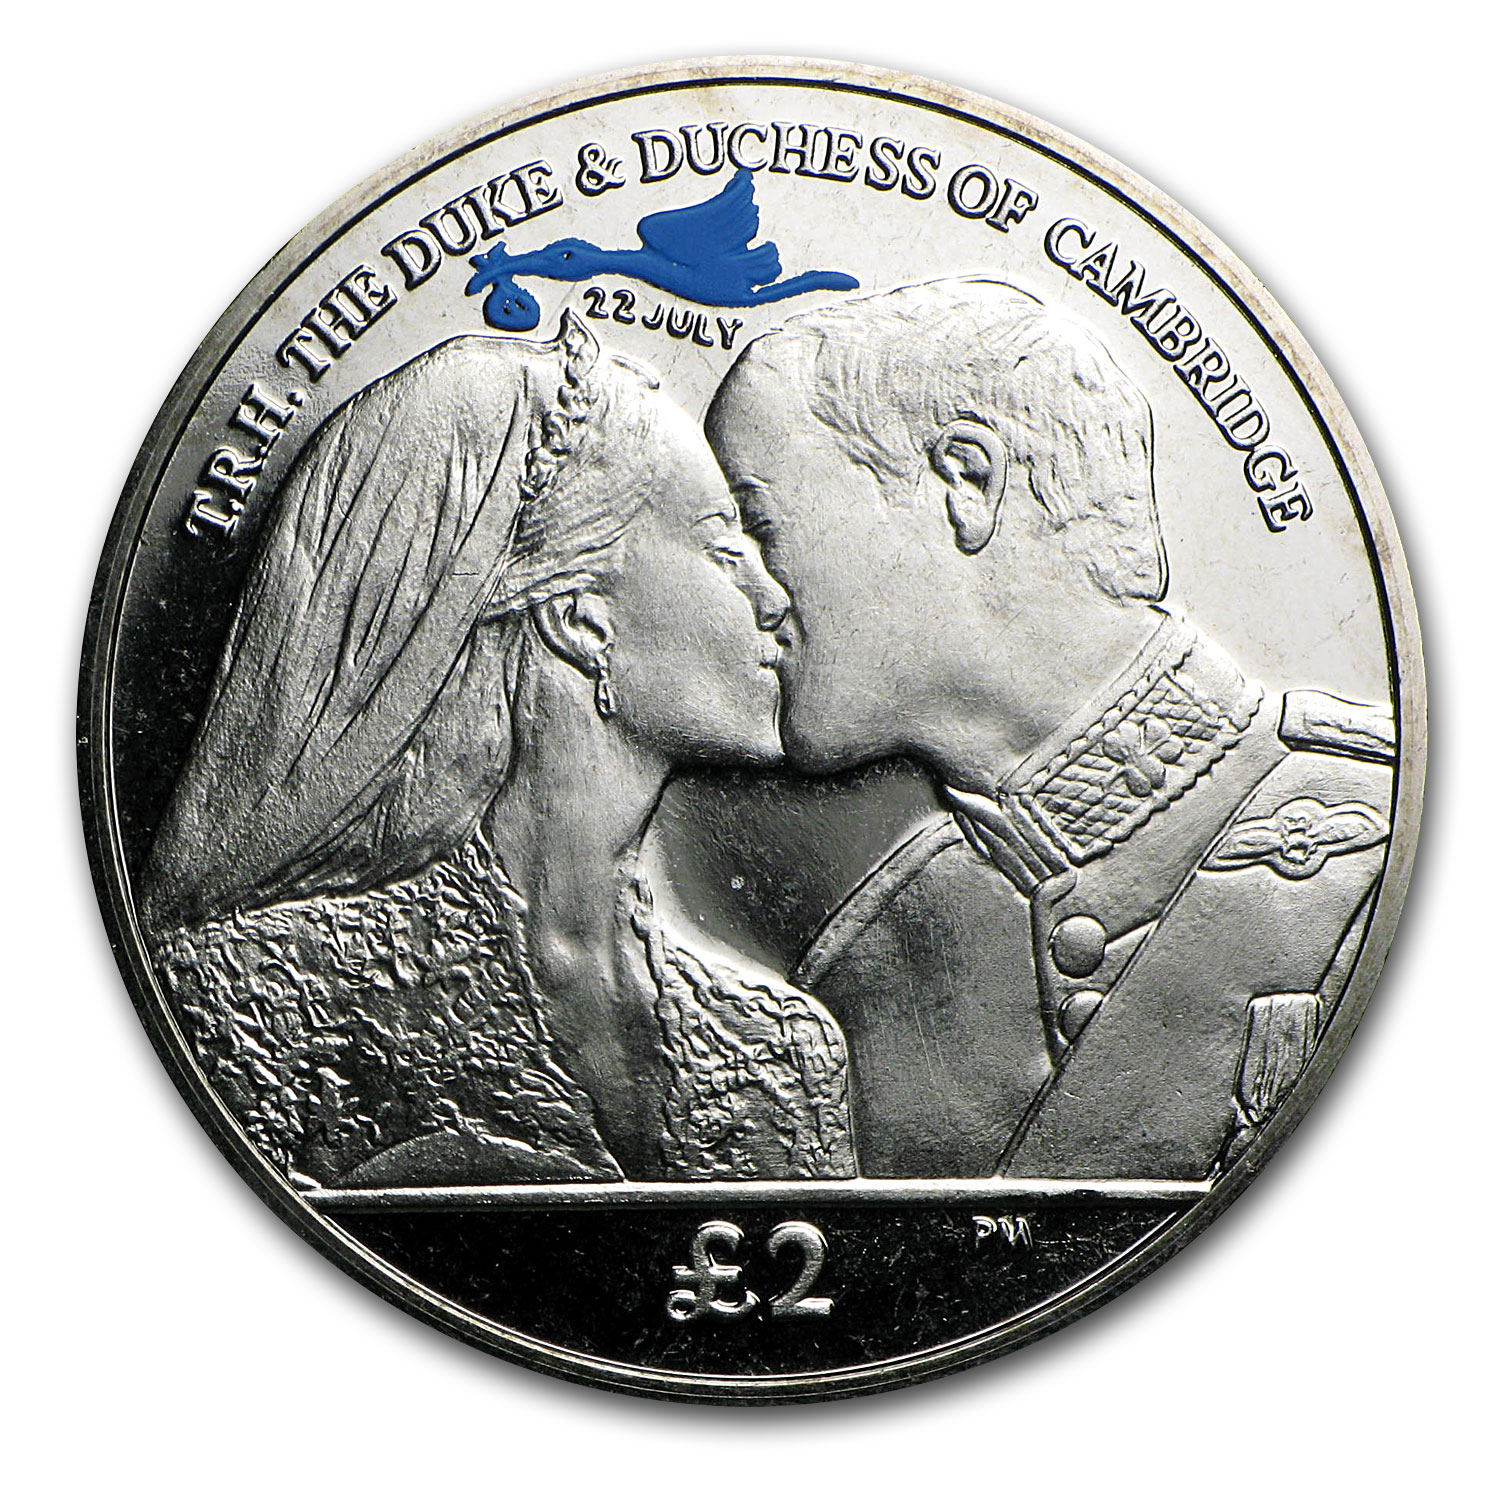 2013 South Georgia Cupro-Nickel £2 Royal Baby The Kiss Coin